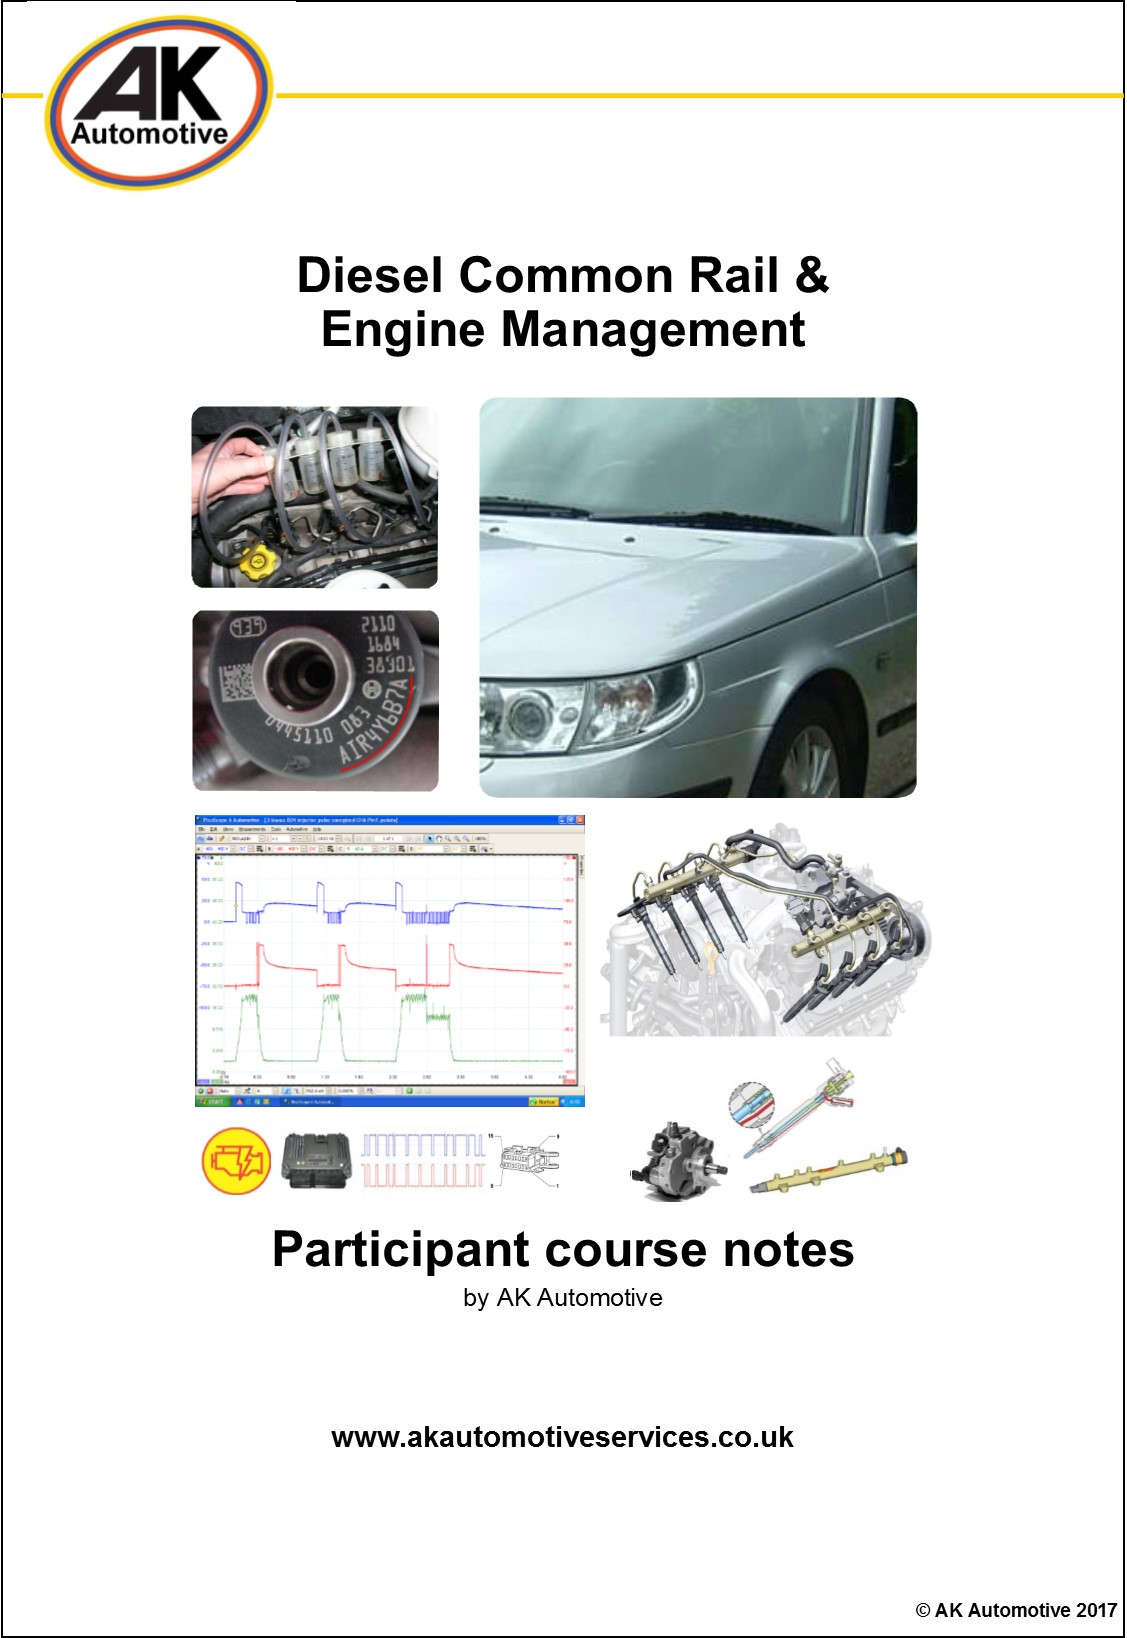 Diesel  mon Rail Engine Management Course Notes besides Ac Electric Arc Furnace Transformers also B F D further C Ed also C B. on electrical systems wiring diagrams